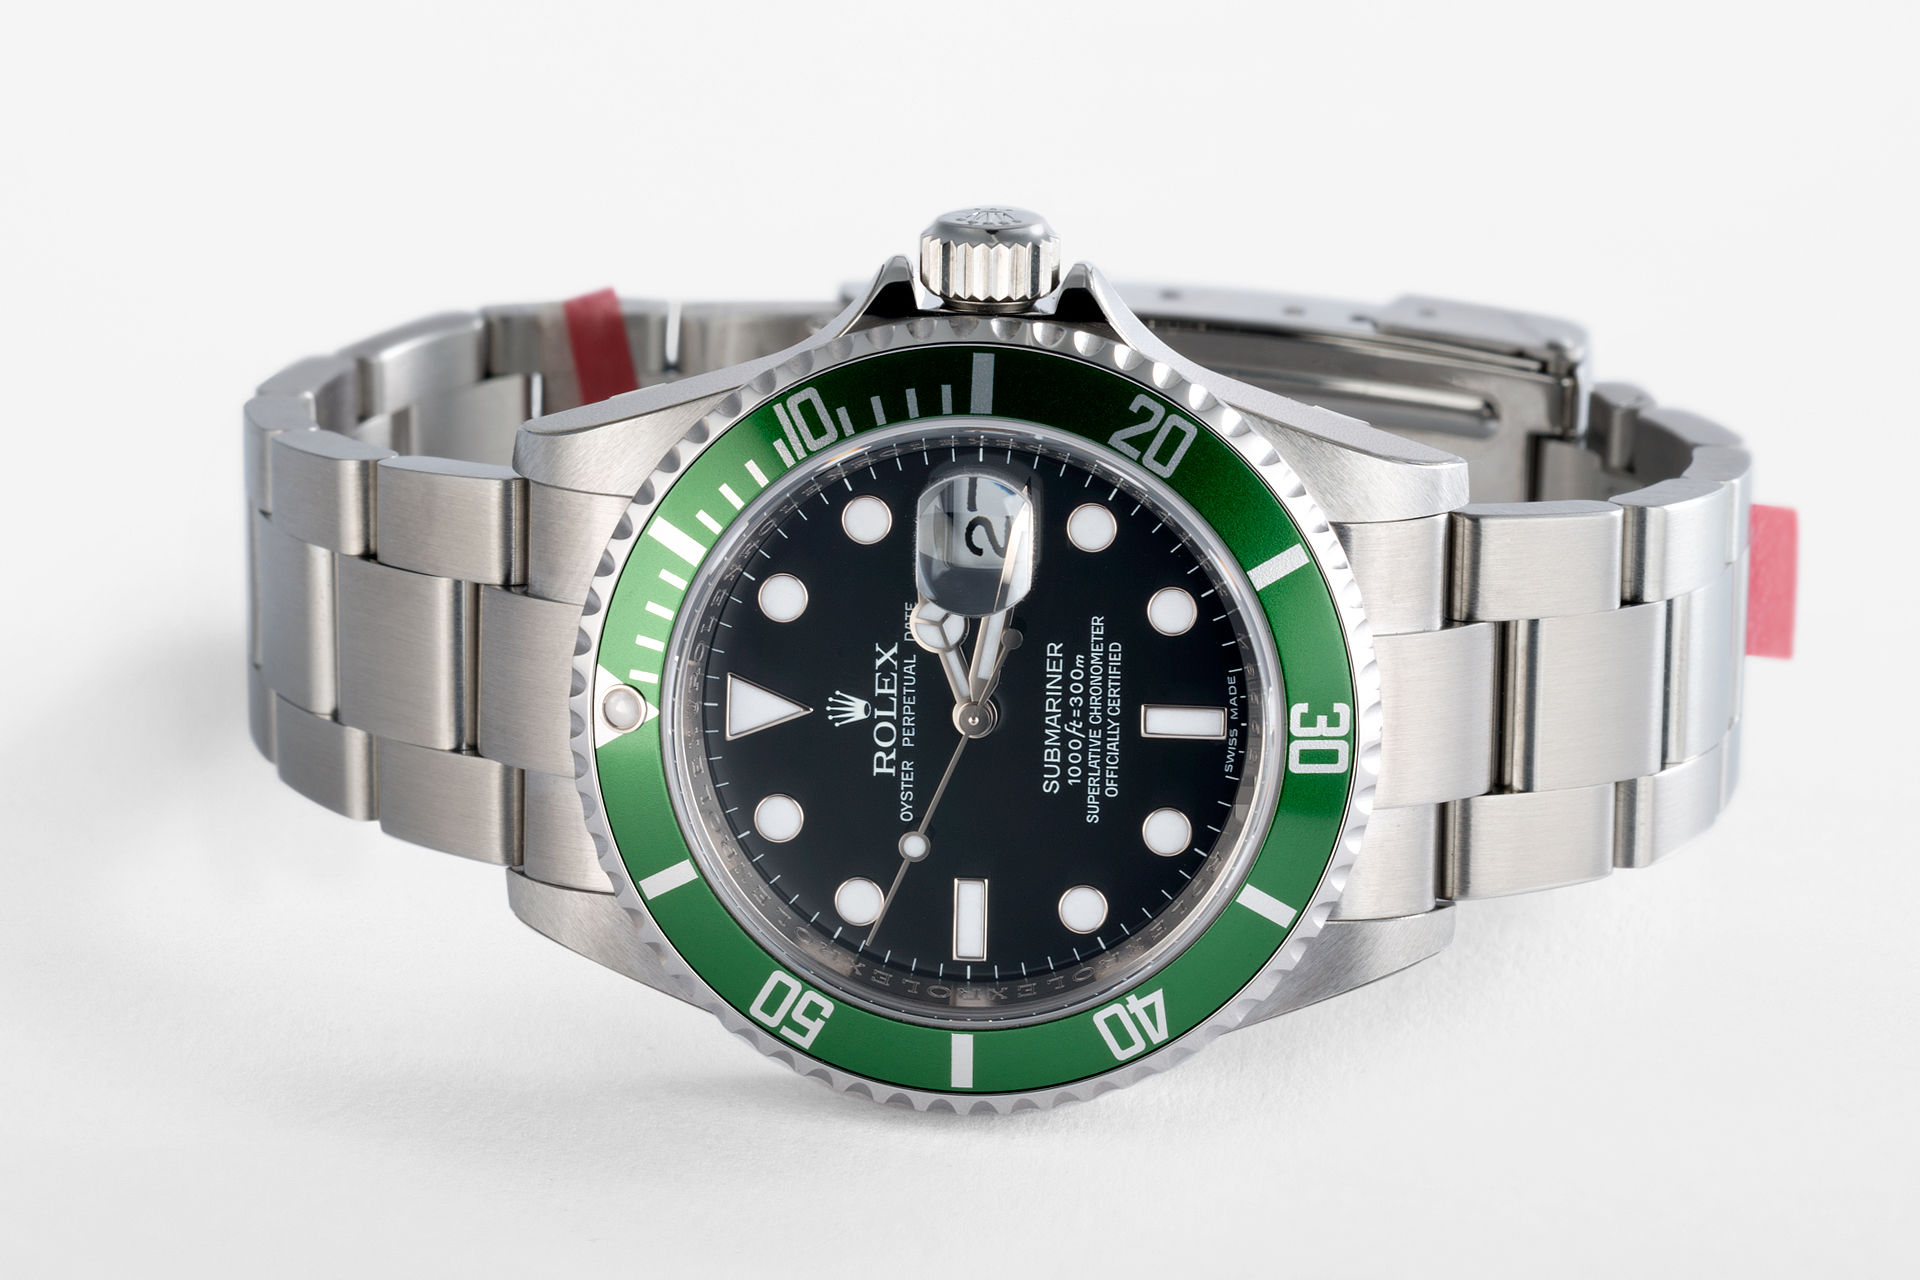 ref 16610LV | 50th Anniversary 'New Old Stock' | Rolex Submariner Date